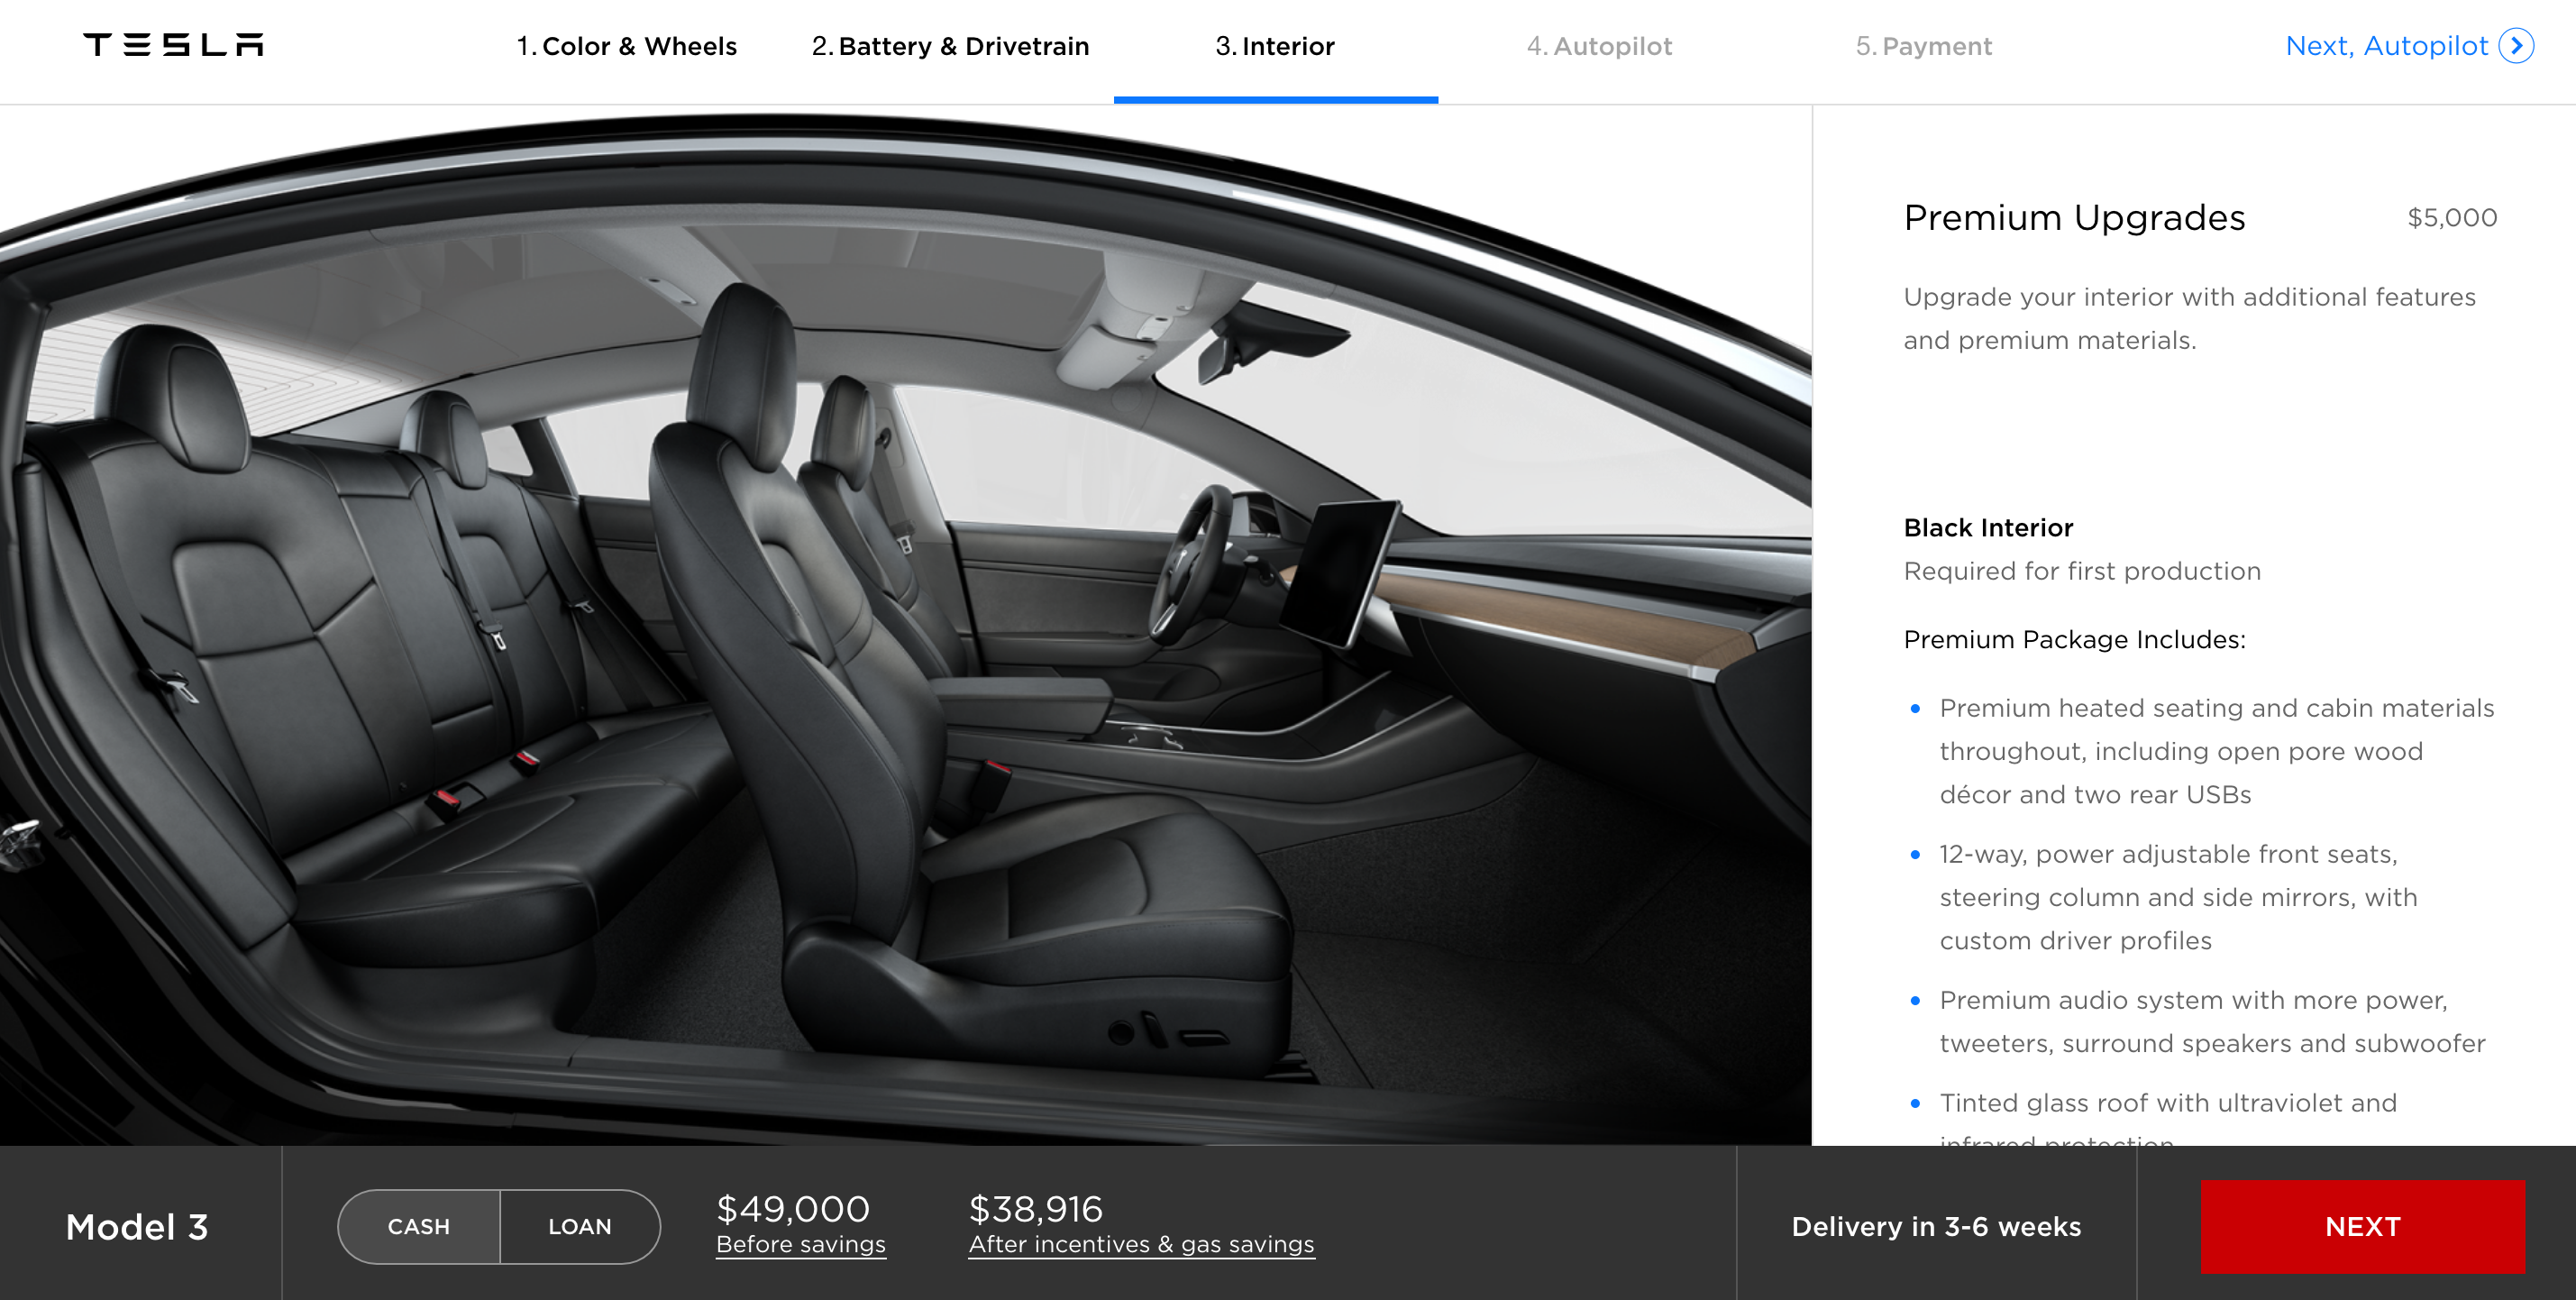 Back to the Tesla Model 3, the big question if you'd prefer one of these options over the all-black interior is how long until you have more choice (if you ...